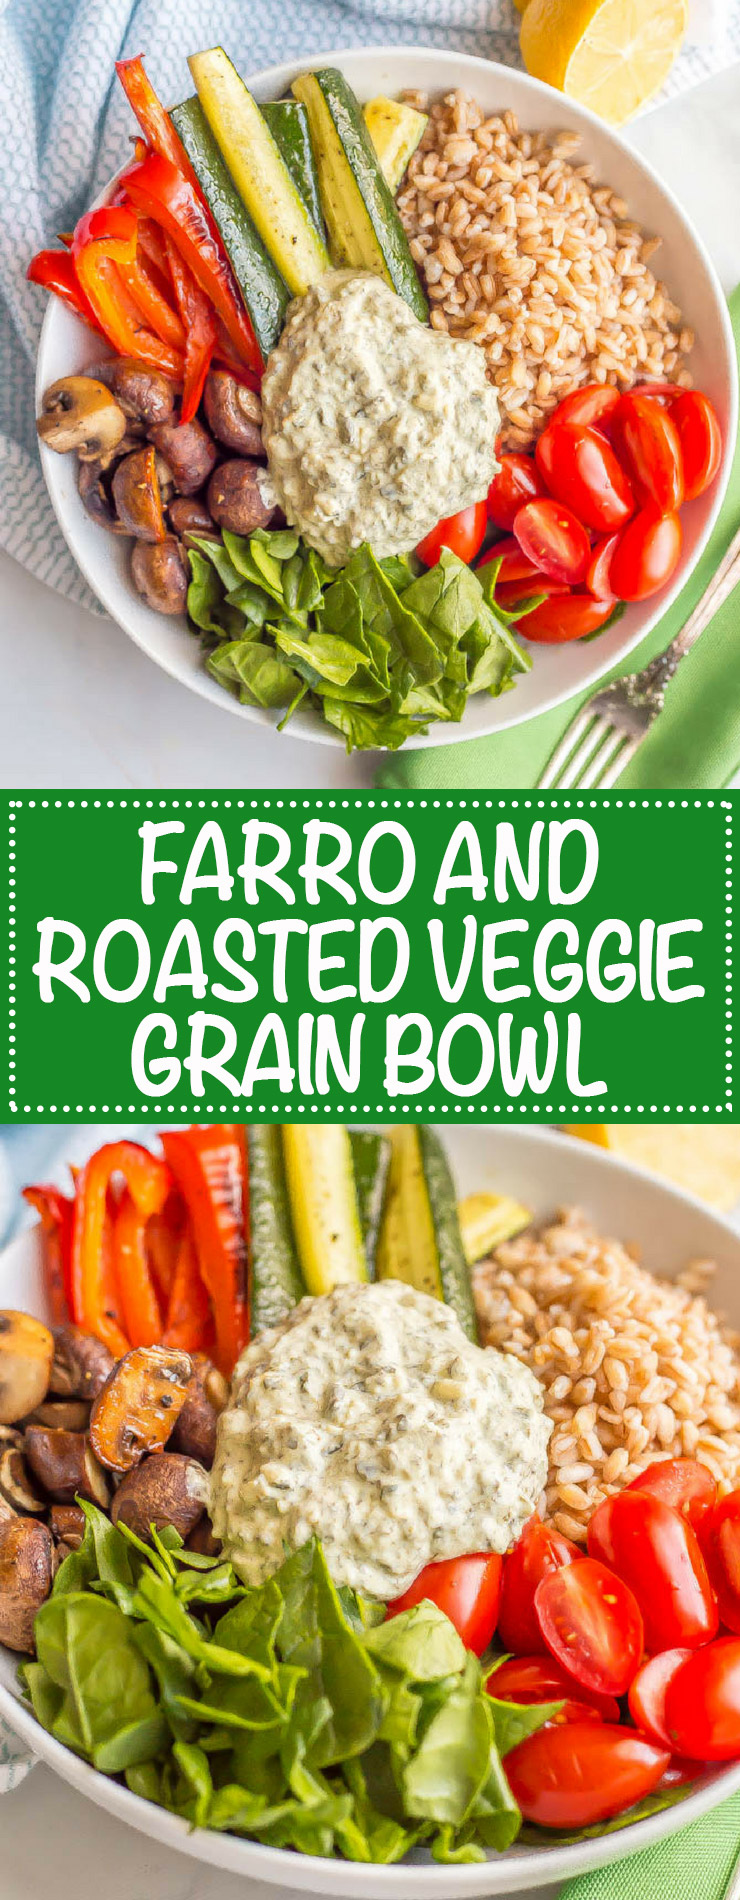 Farro and roasted vegetable grain bowl is a healthy vegetarian lunch or light dinner loaded with whole grains, roasted and fresh veggies and topped with a creamy spinach and kale dip. #grainbowl #vegetarian #lunchbowl | www.familyfoodonthetable.com